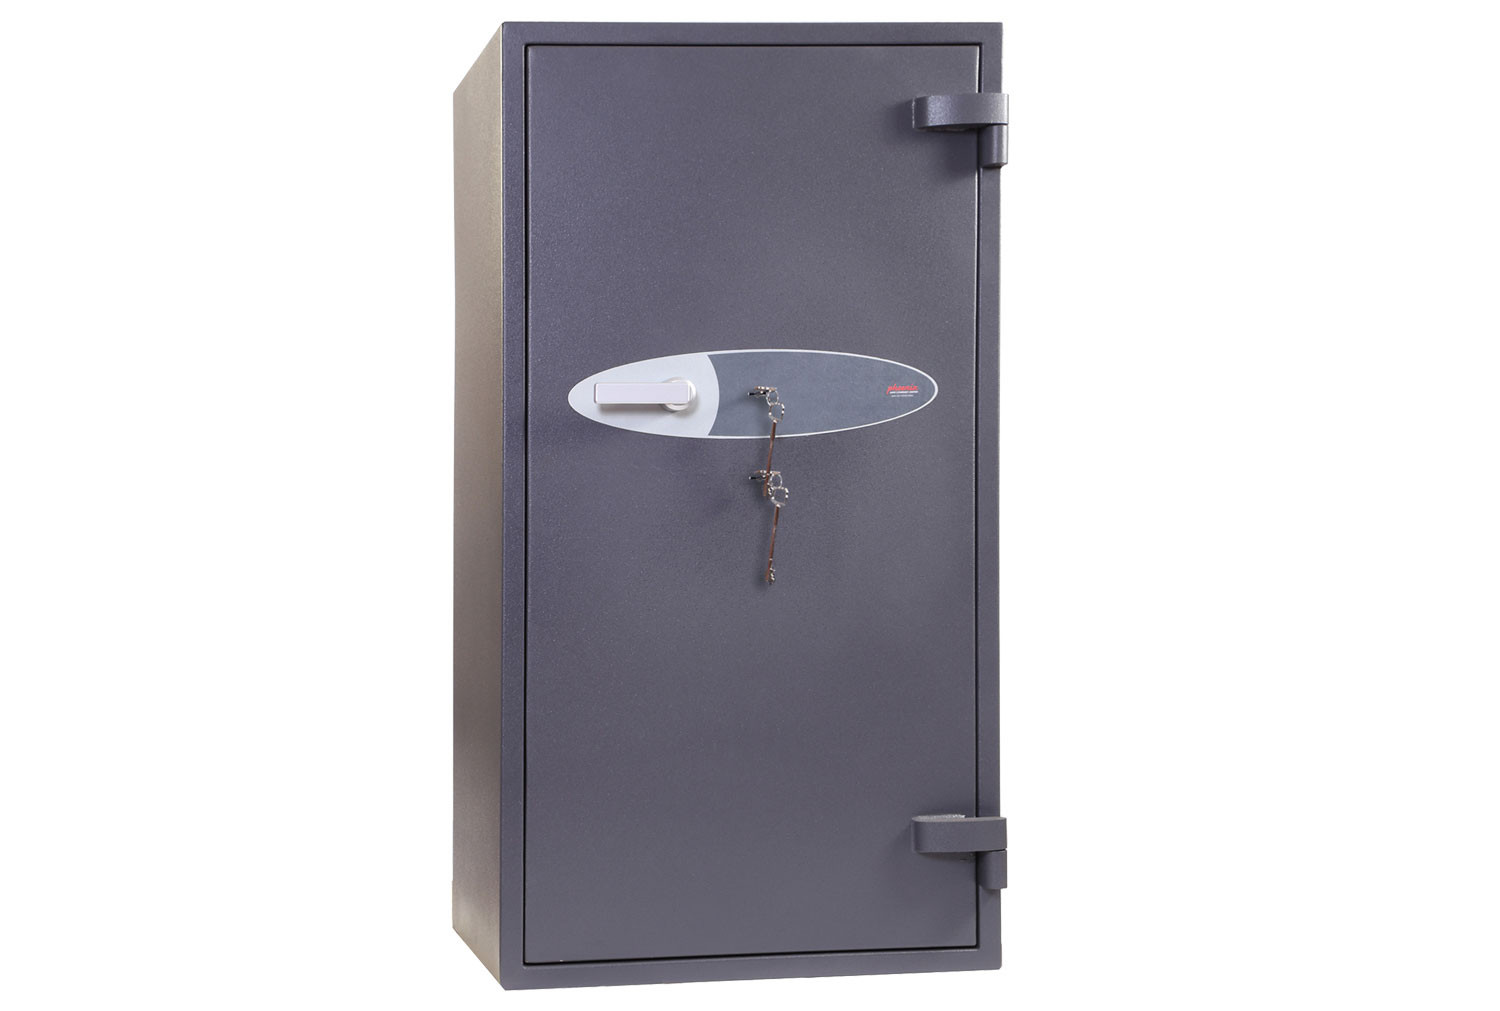 Phoenix Cosmos HS9074K High Security Safe With Key Lock (295ltrs)